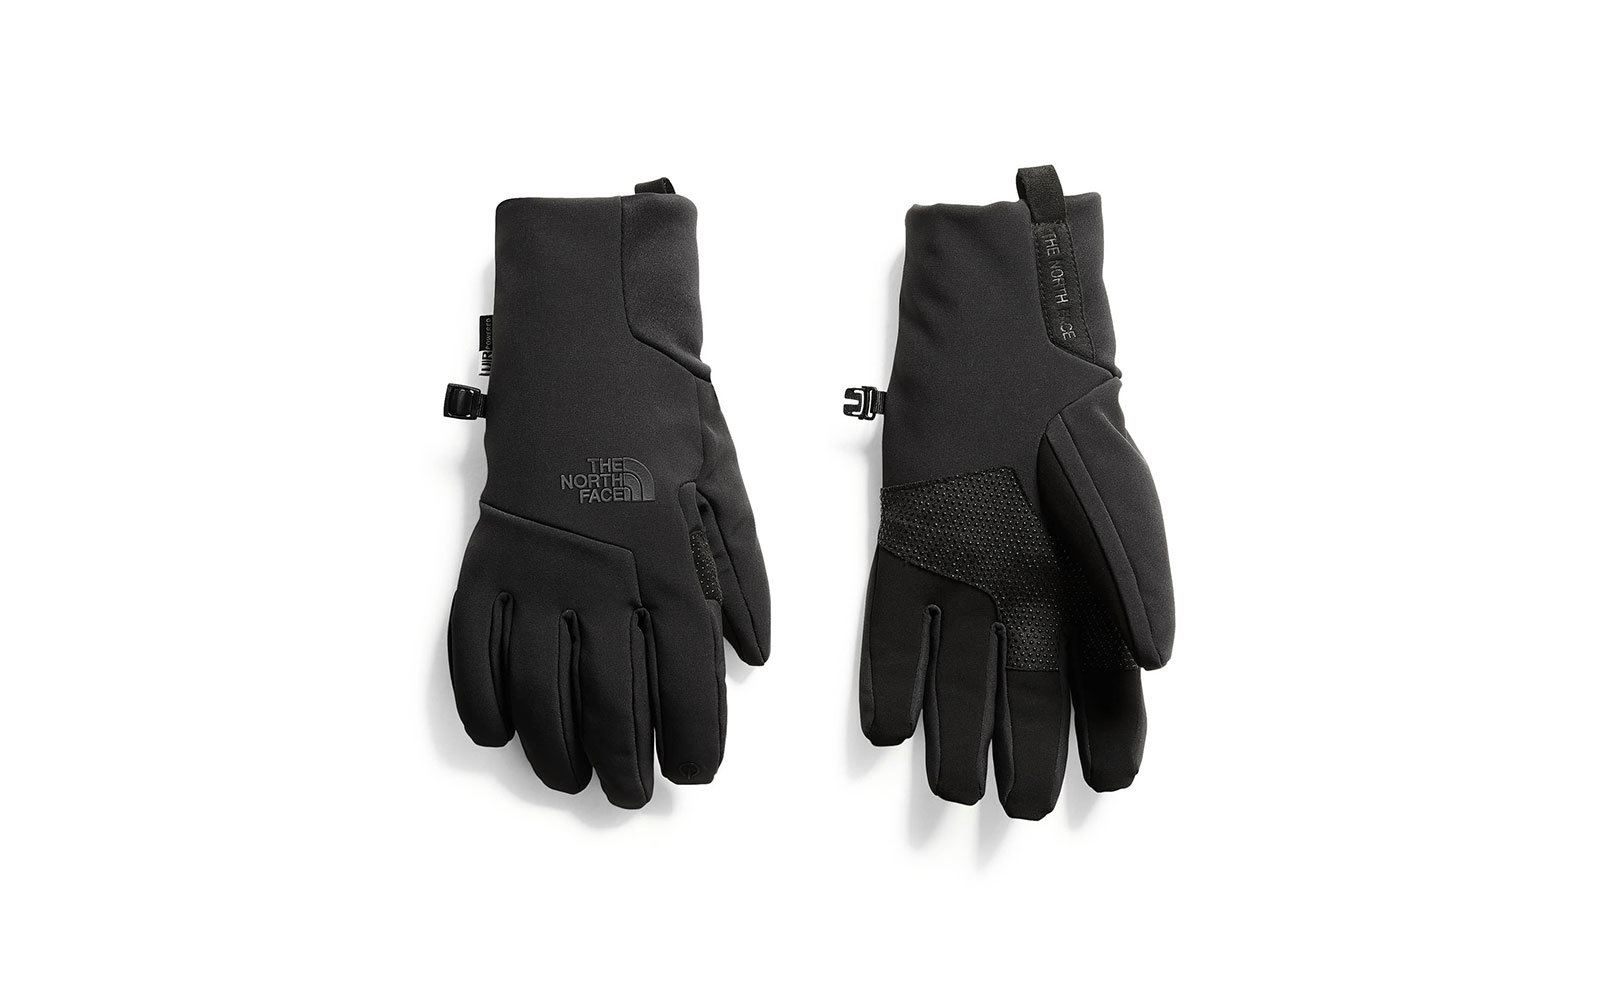 North Face heavy winter apex gloves